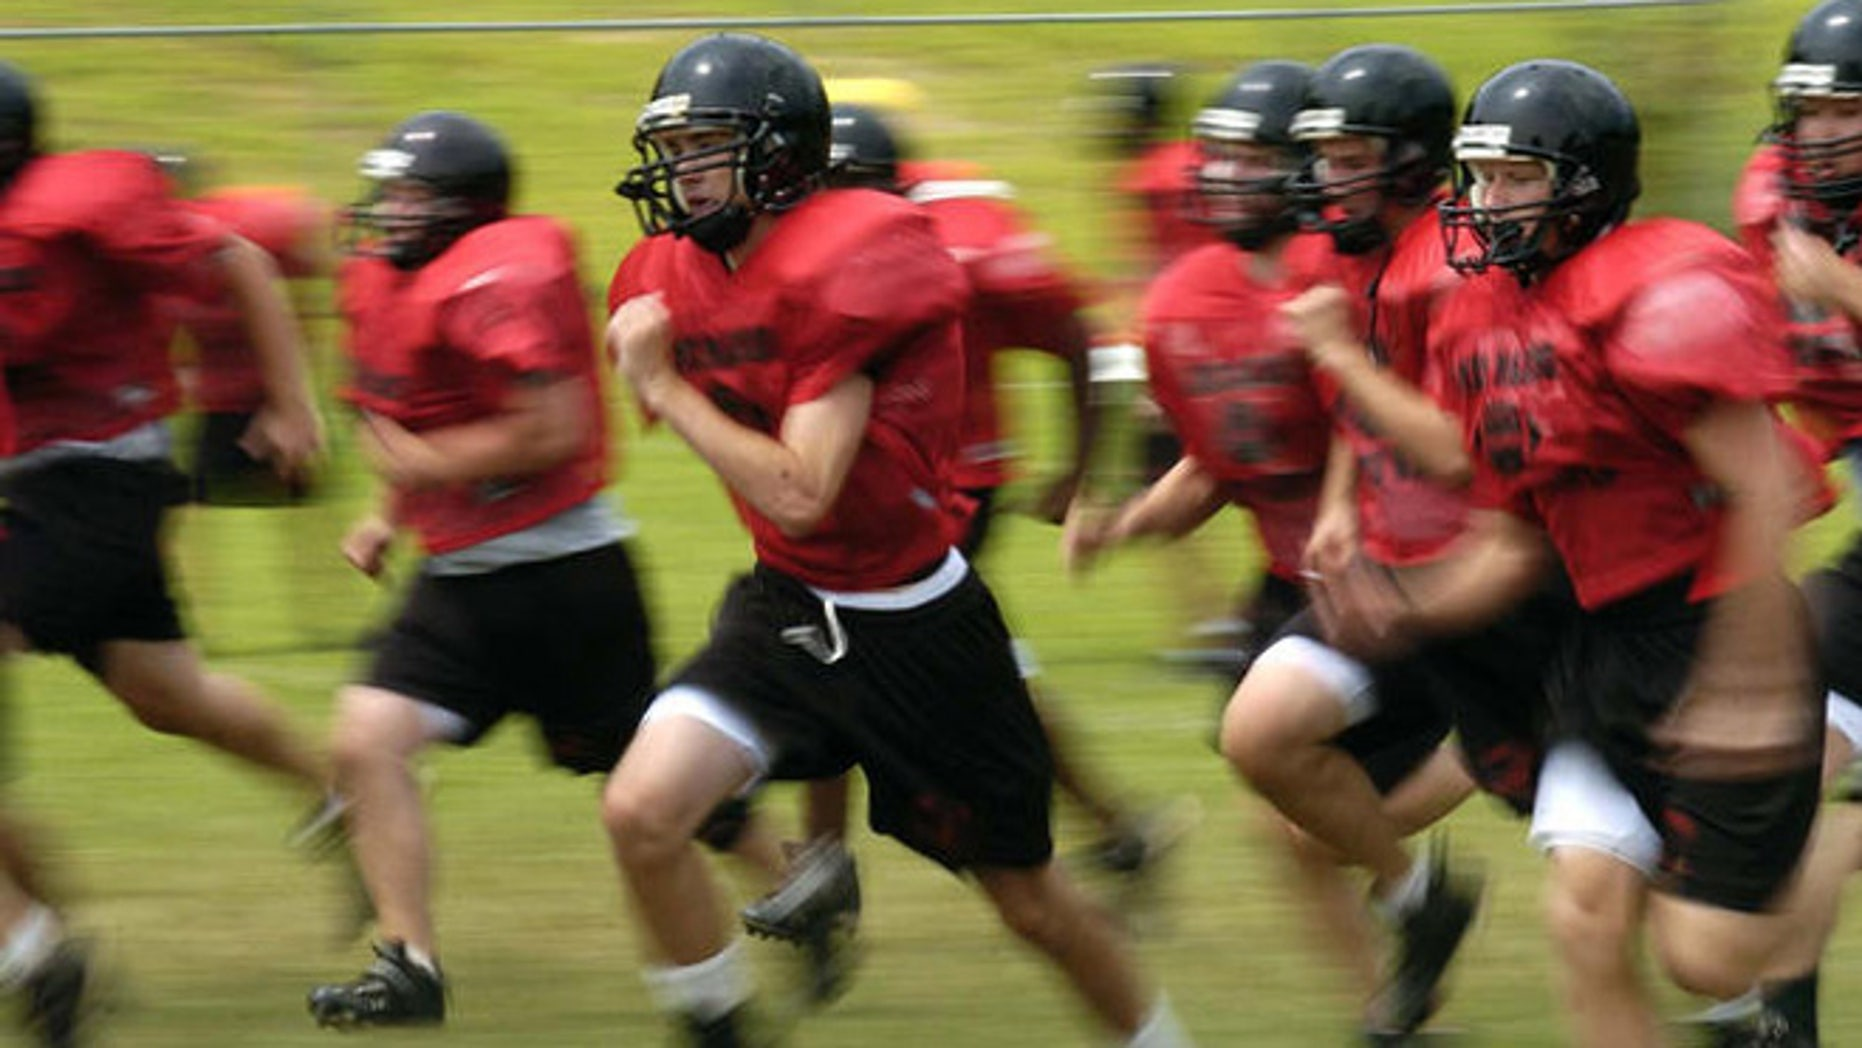 Madison High School football players run sprints during a half pad practice on Friday, Aug. 11, 2006, in Vienna, Va.  It's that time of year: Kids hit the ball fields running, and often hobble or are carried off. Back to school means back to organized sports for more than 30 million children and teenagers, and roughly 2.6 million emergency-room visits during the year for resulting injuries. Basketball, football and soccer lead the list of injury-prone team sports. (AP Photo/Kevin Wolf)